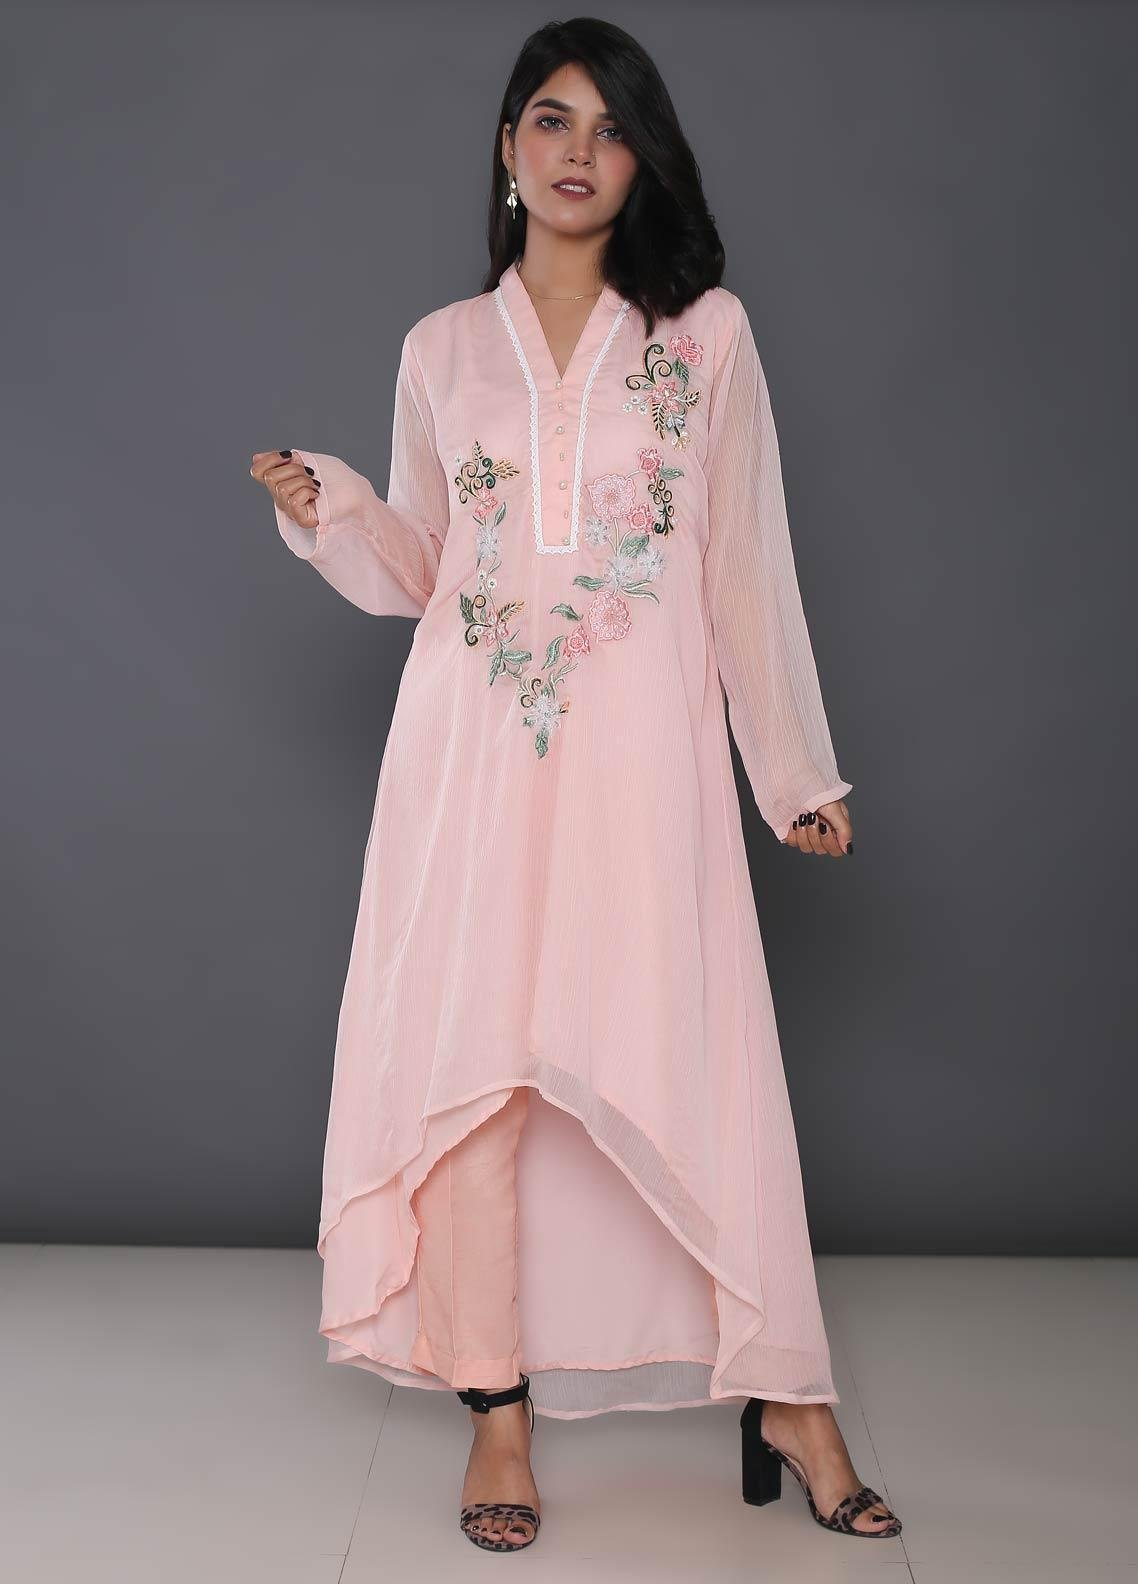 Change Embroidered Chiffon Stitched Kurtis CK2181 Pink